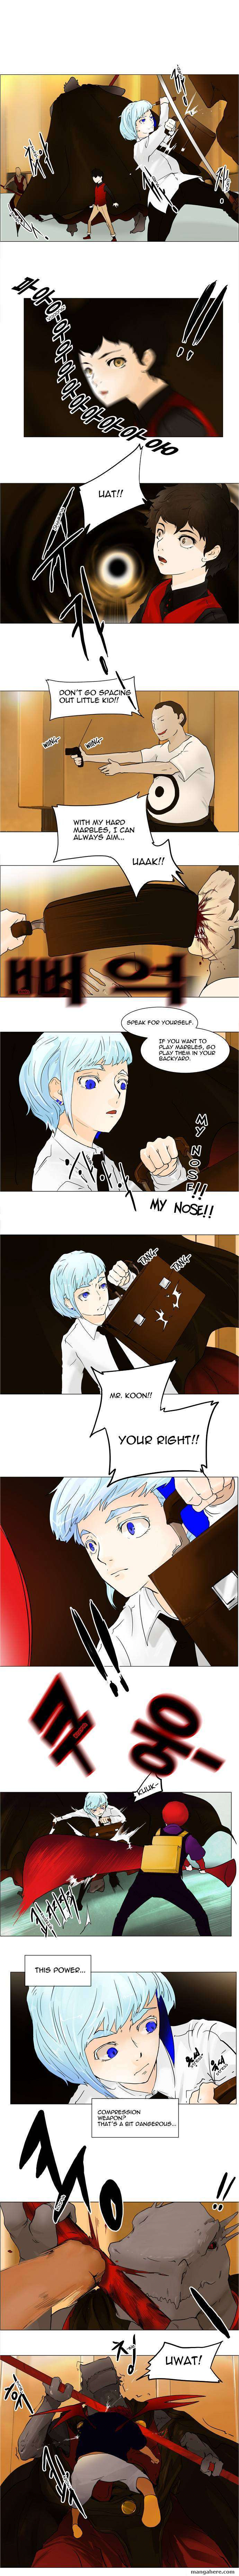 Tower of God 22 Page 2